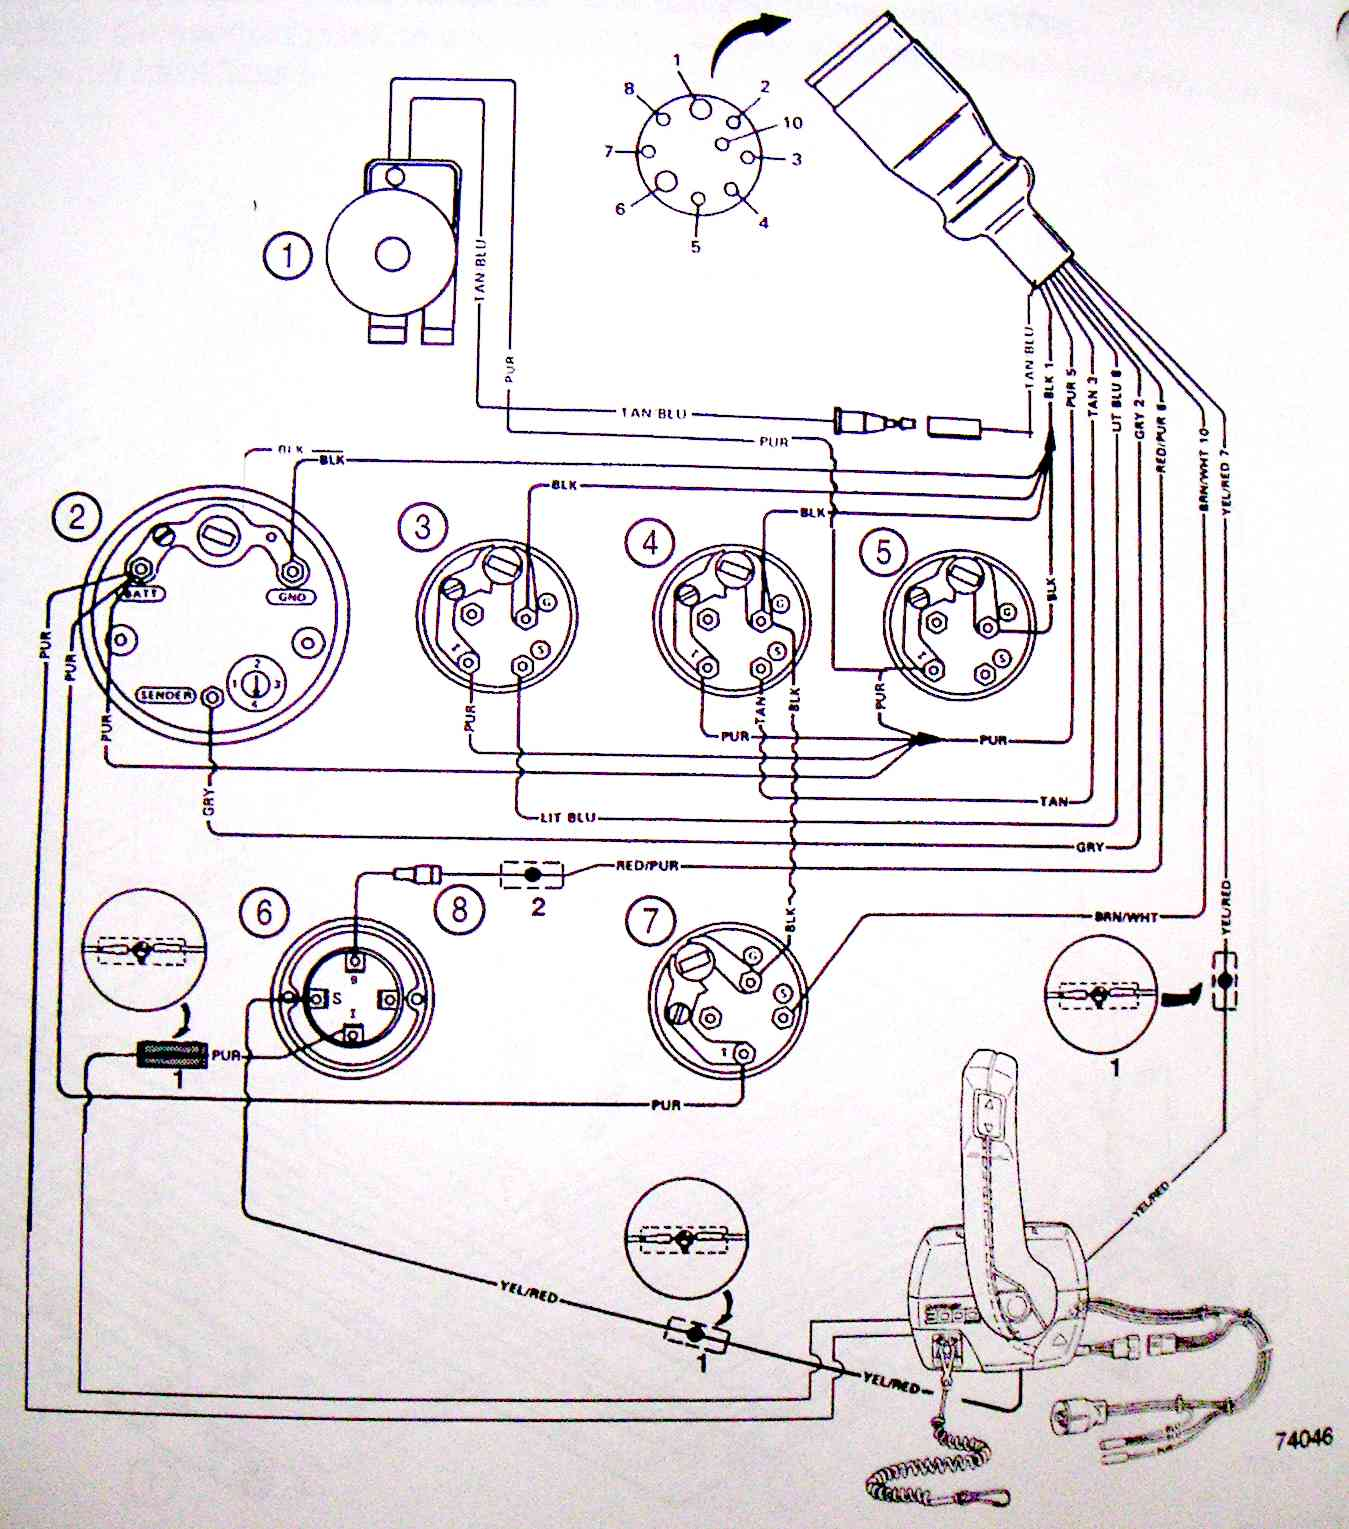 Mercruiser Wiring Harness Diagram Bookmark About Ignition Pre Alpha Data Rh 6 8 14 Reisen Fuer Meister De